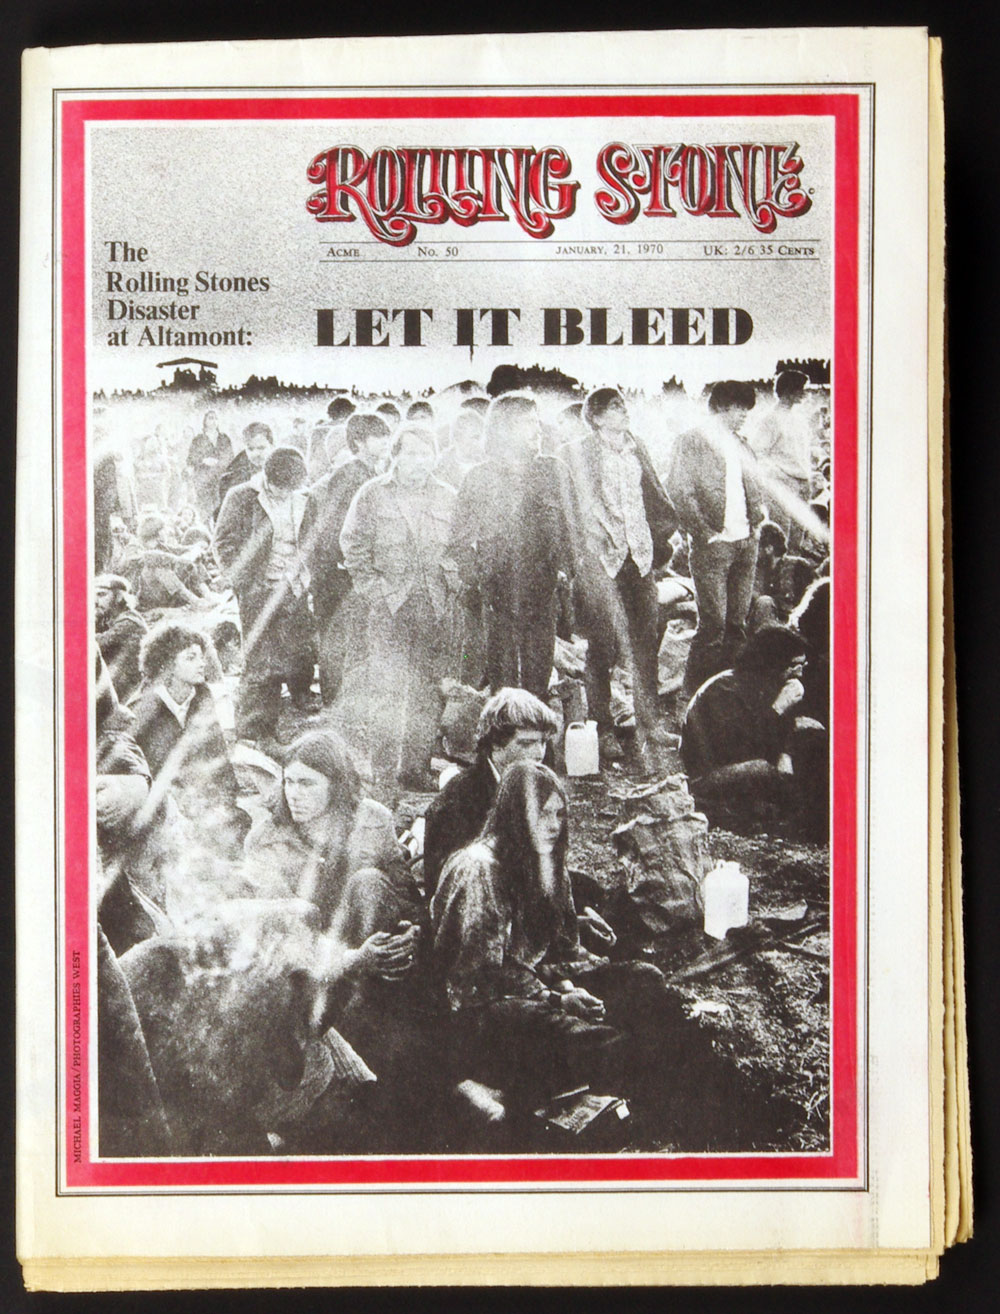 Rolling Stone Magazine 1970 Jan 21 No. 50 The Rolling Stones Disaster in Altamont